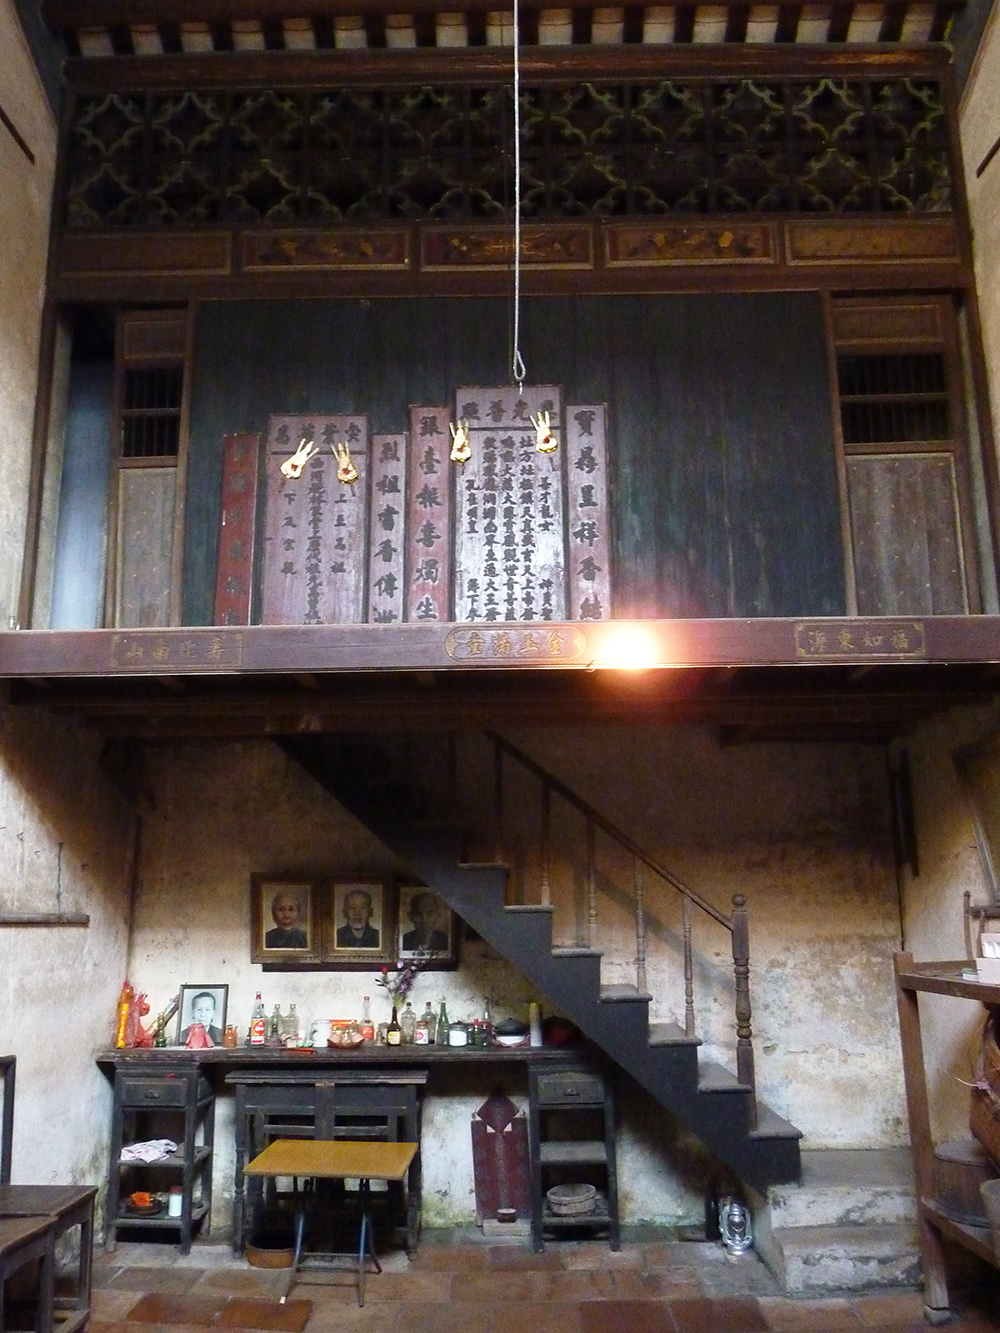 Lim family house interior showing the two-storey structure, Lum Ok Dei village, Toishan county, which Lim visited in 2009. IMOGENE LIM